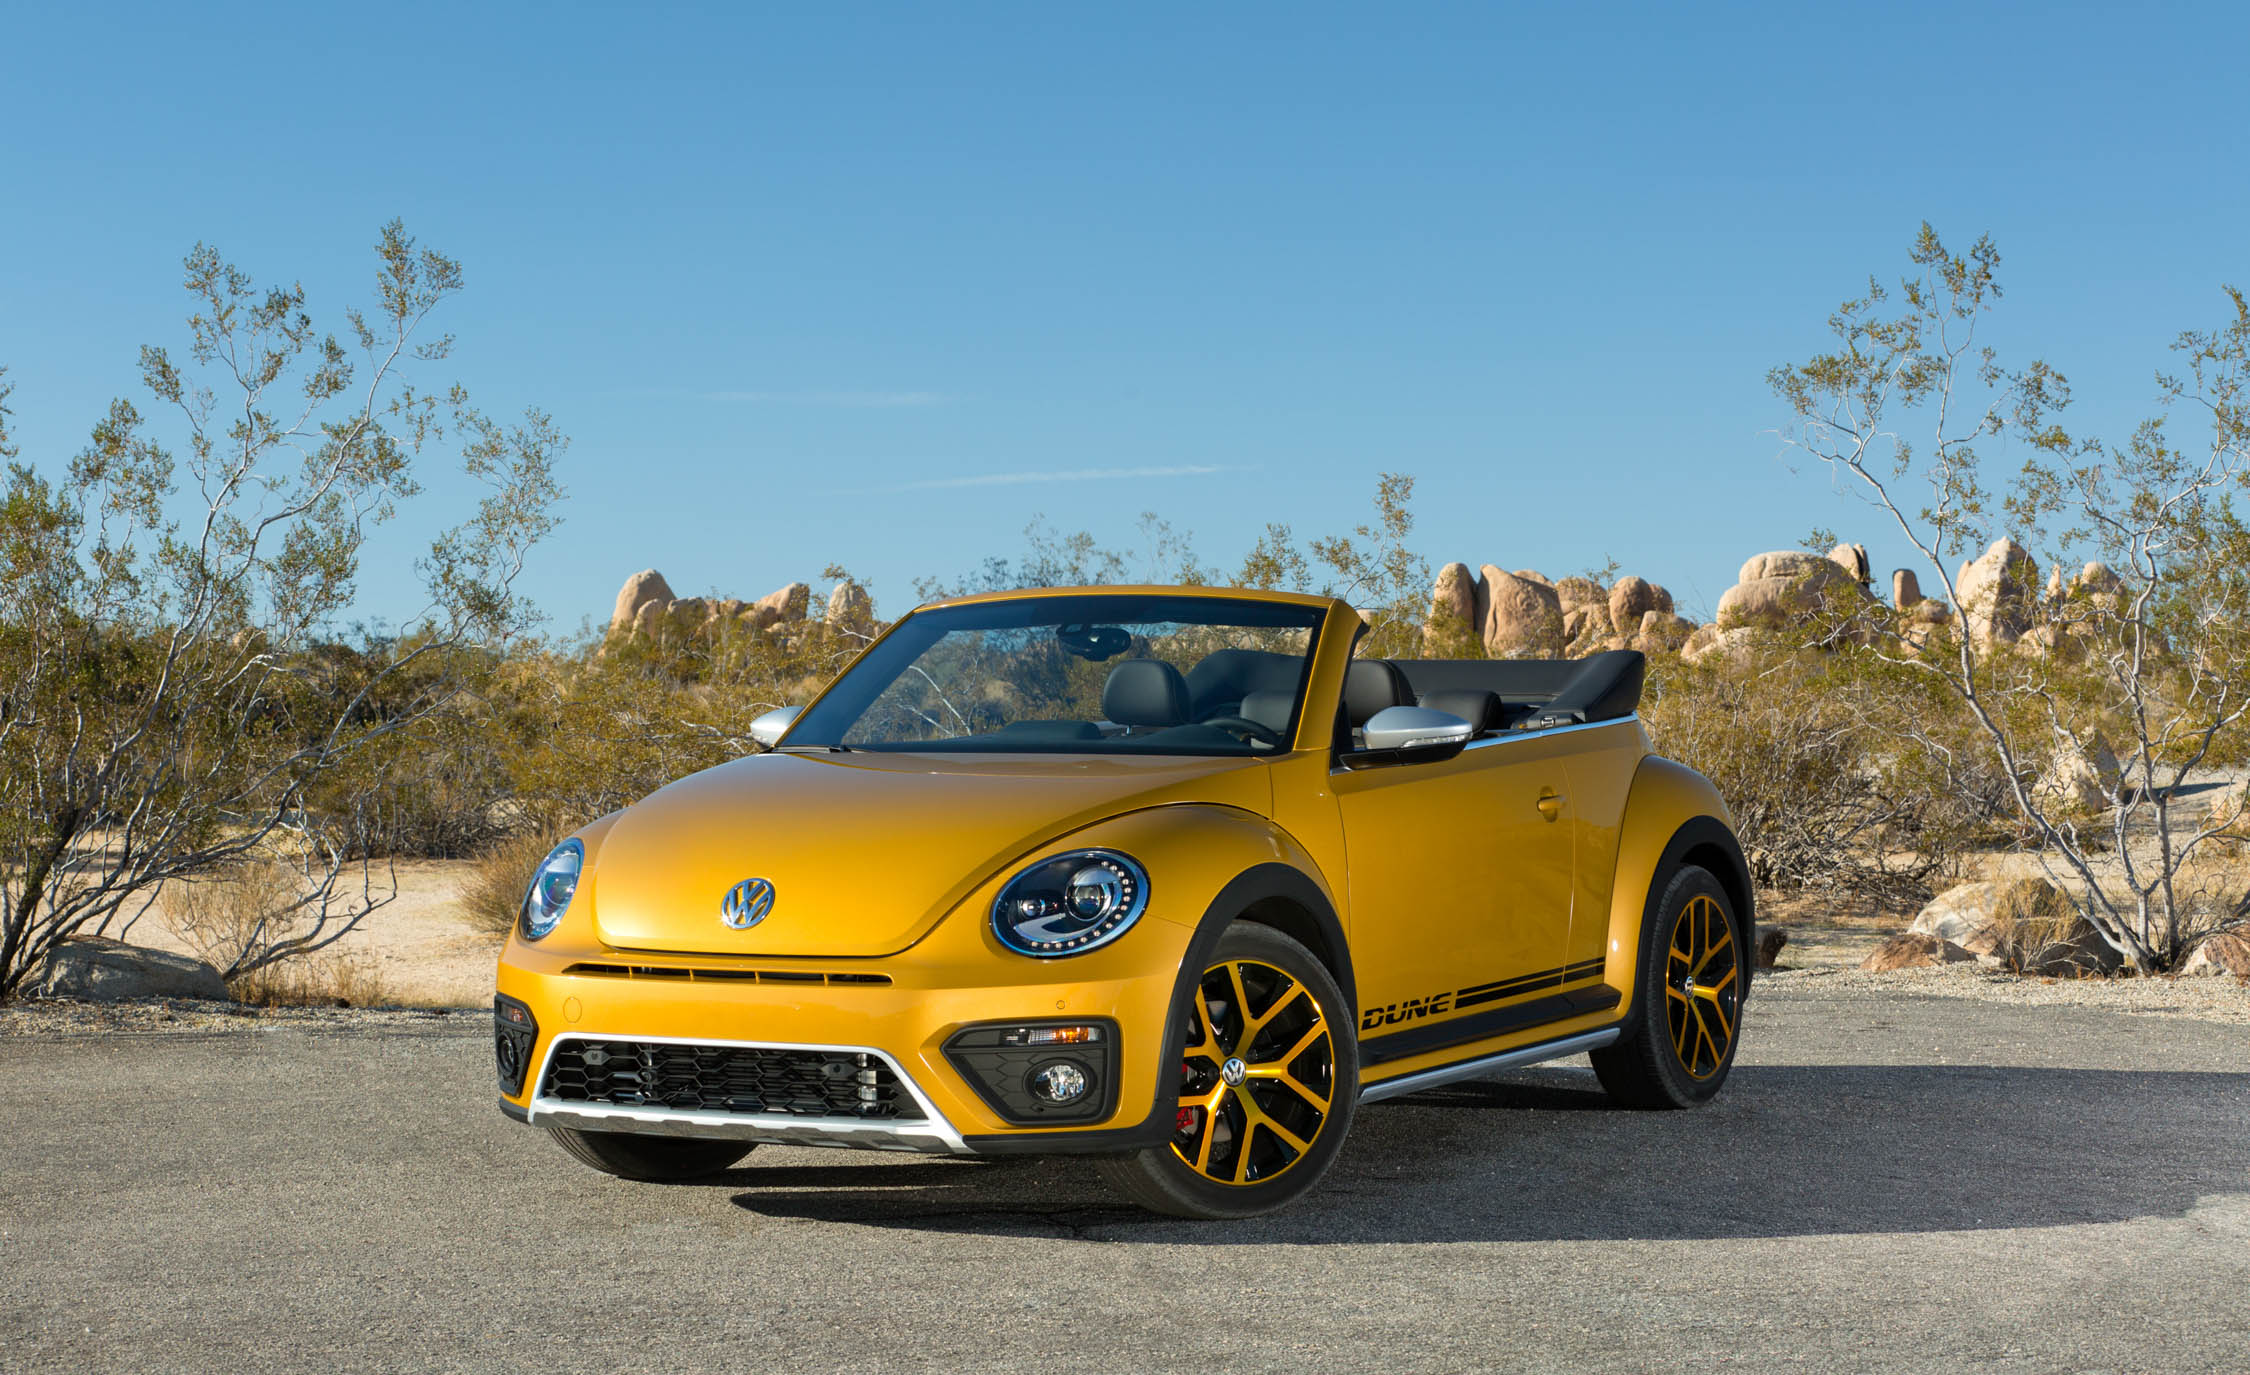 2016 Volkswagen Beetle Dune Convertible Exterior Full Front (Photo 3 of 32)